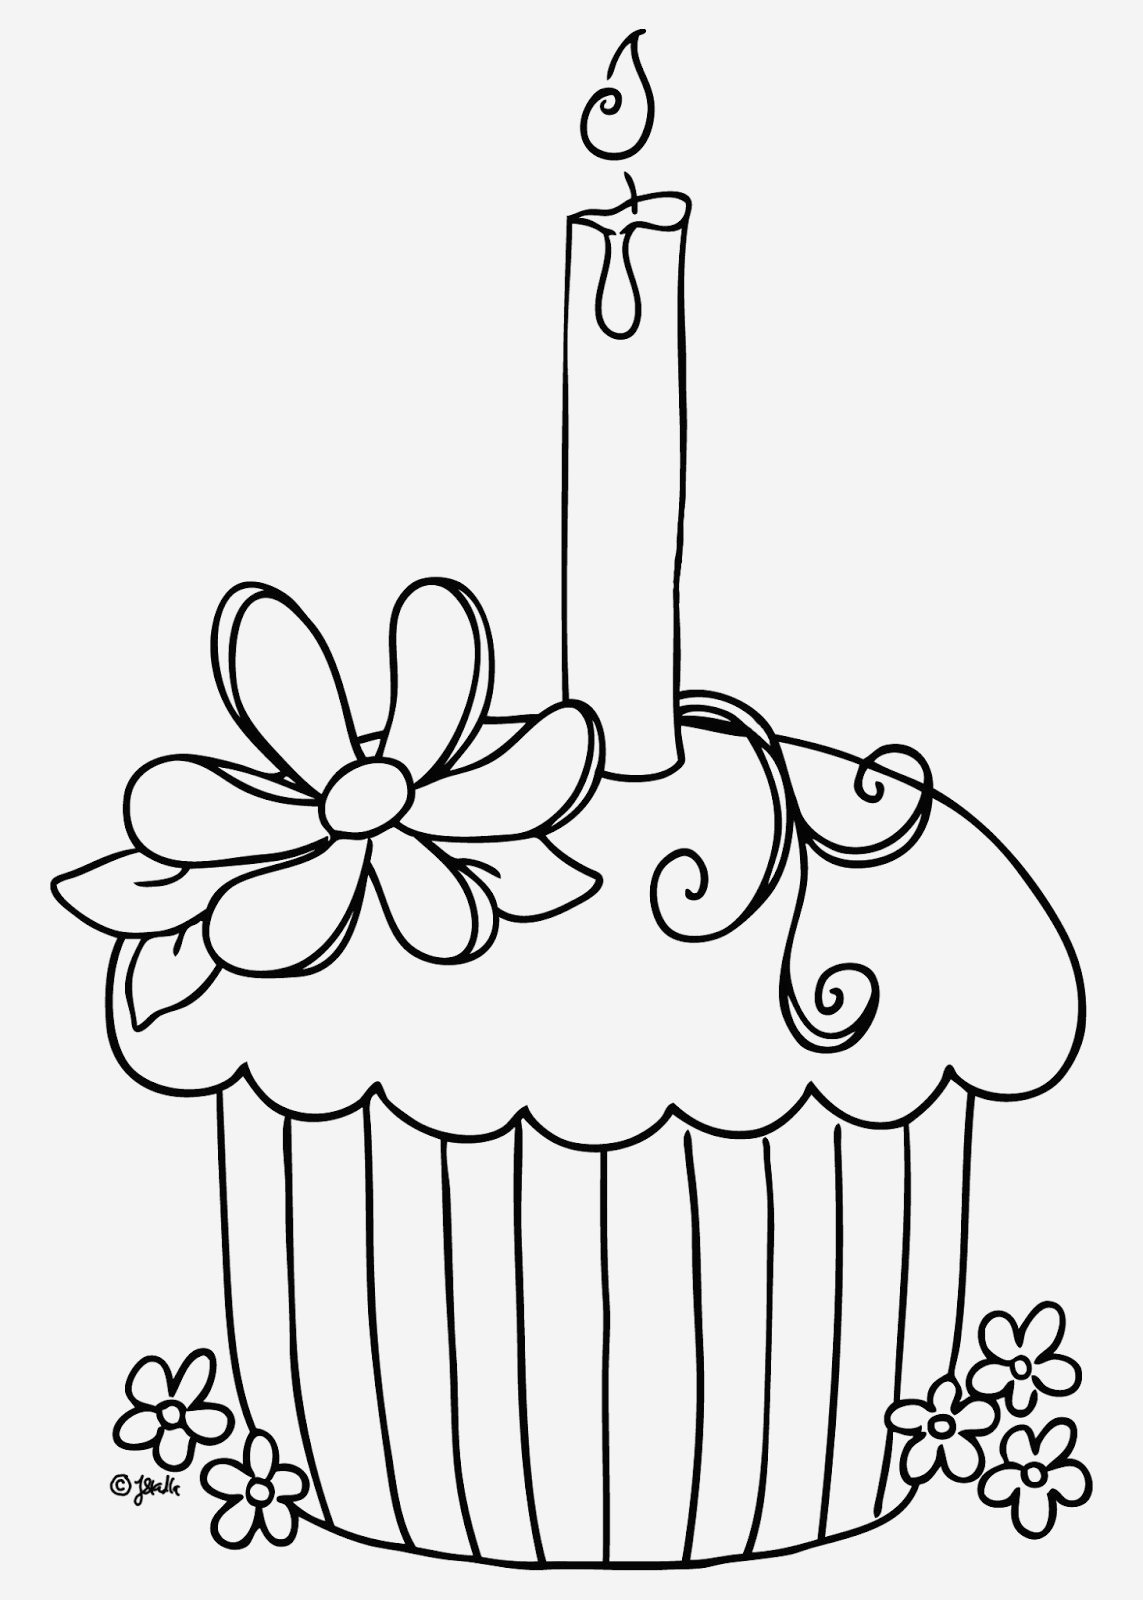 Coloriage Cupcake à Imprimer Fresh Dessins Et Coloriages Page De Coloriage Grand format   Of Coloriage Cupcake à Imprimer